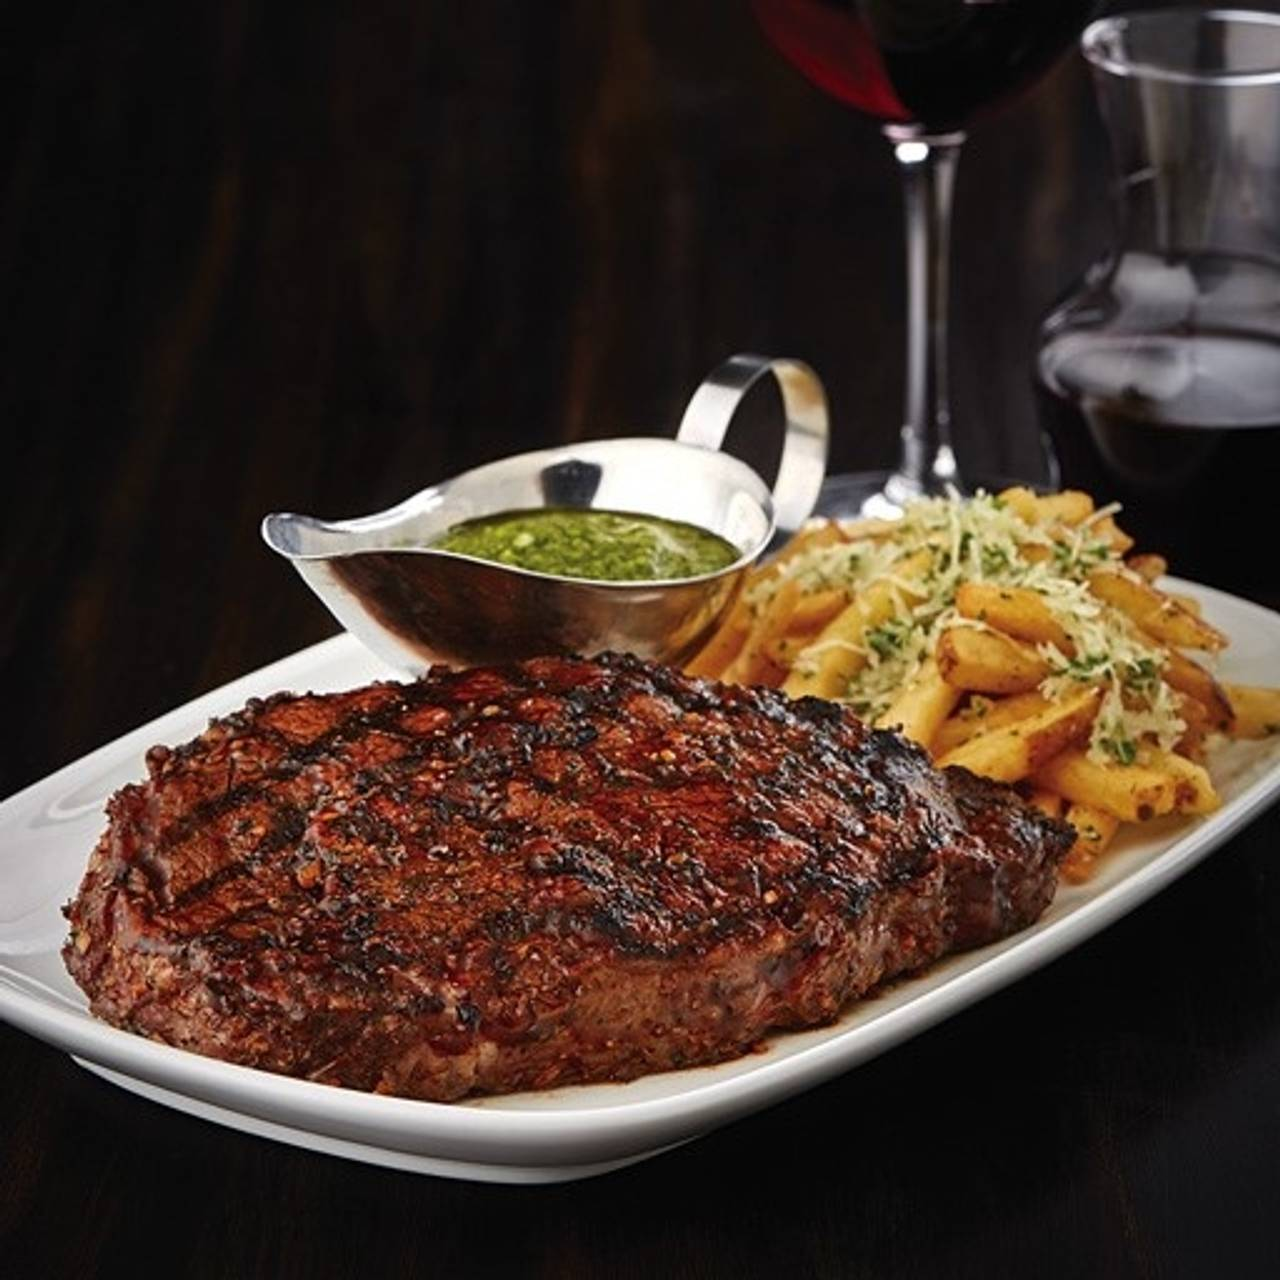 MR MIKES SteakhouseCasual - Camrose - Camrose, AB | OpenTable